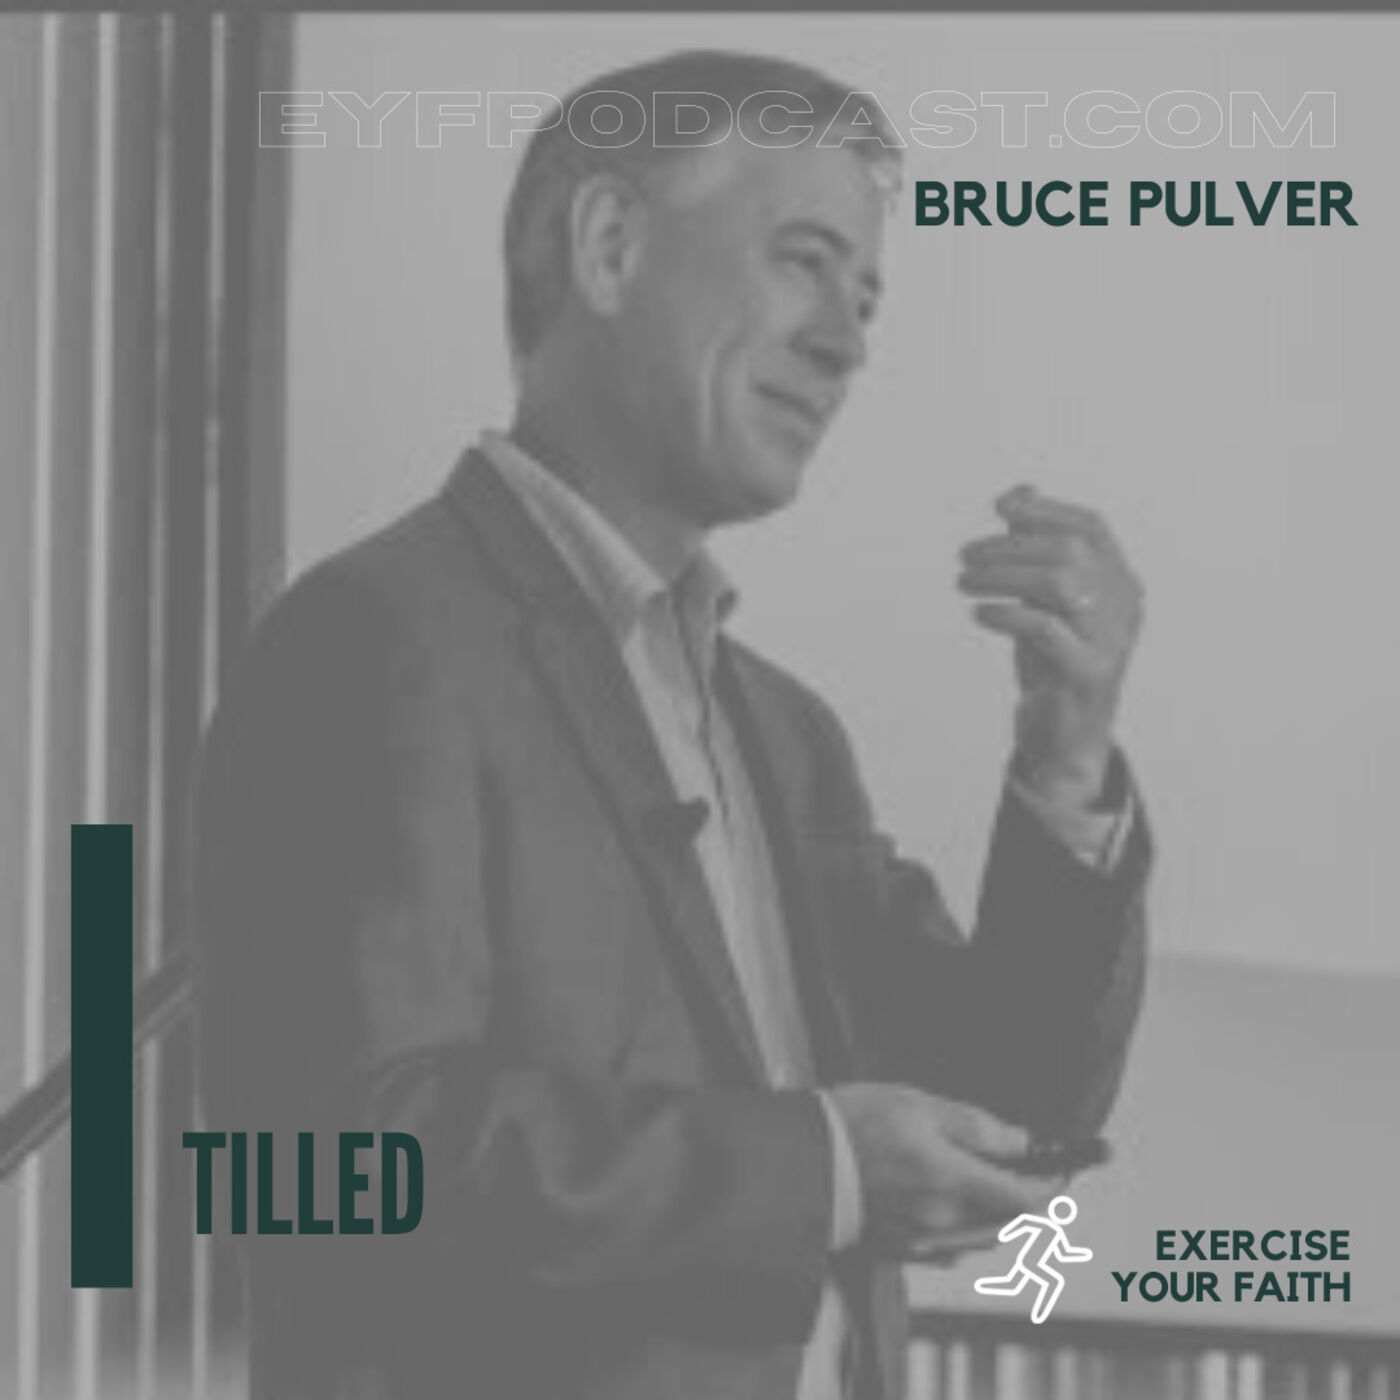 EYFPodcast- Exercise Your Faith with Bruce Pulver as we begin our new Farming Series with TILLED